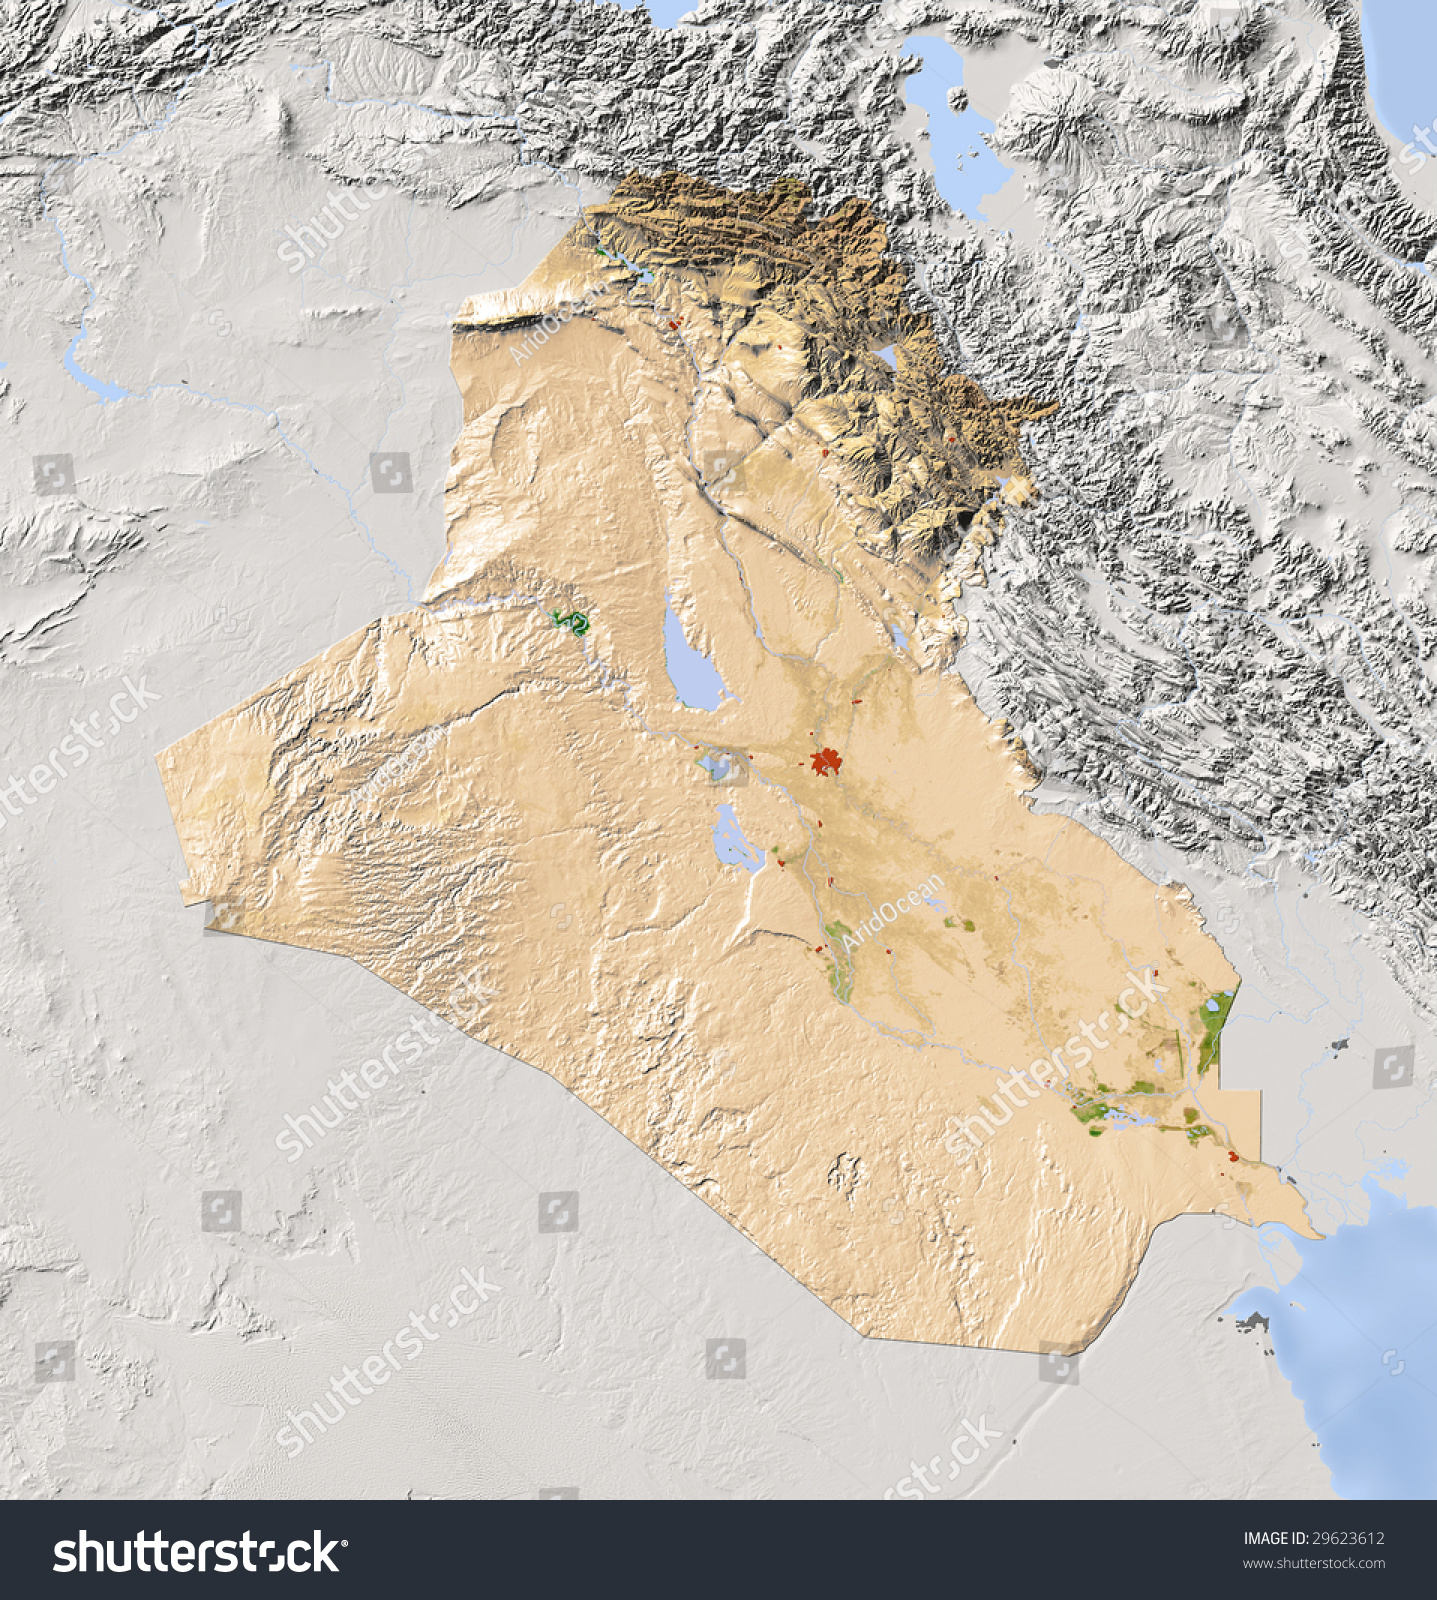 iraq shaded relief map surrounding territory greyed out colored according to vegetation